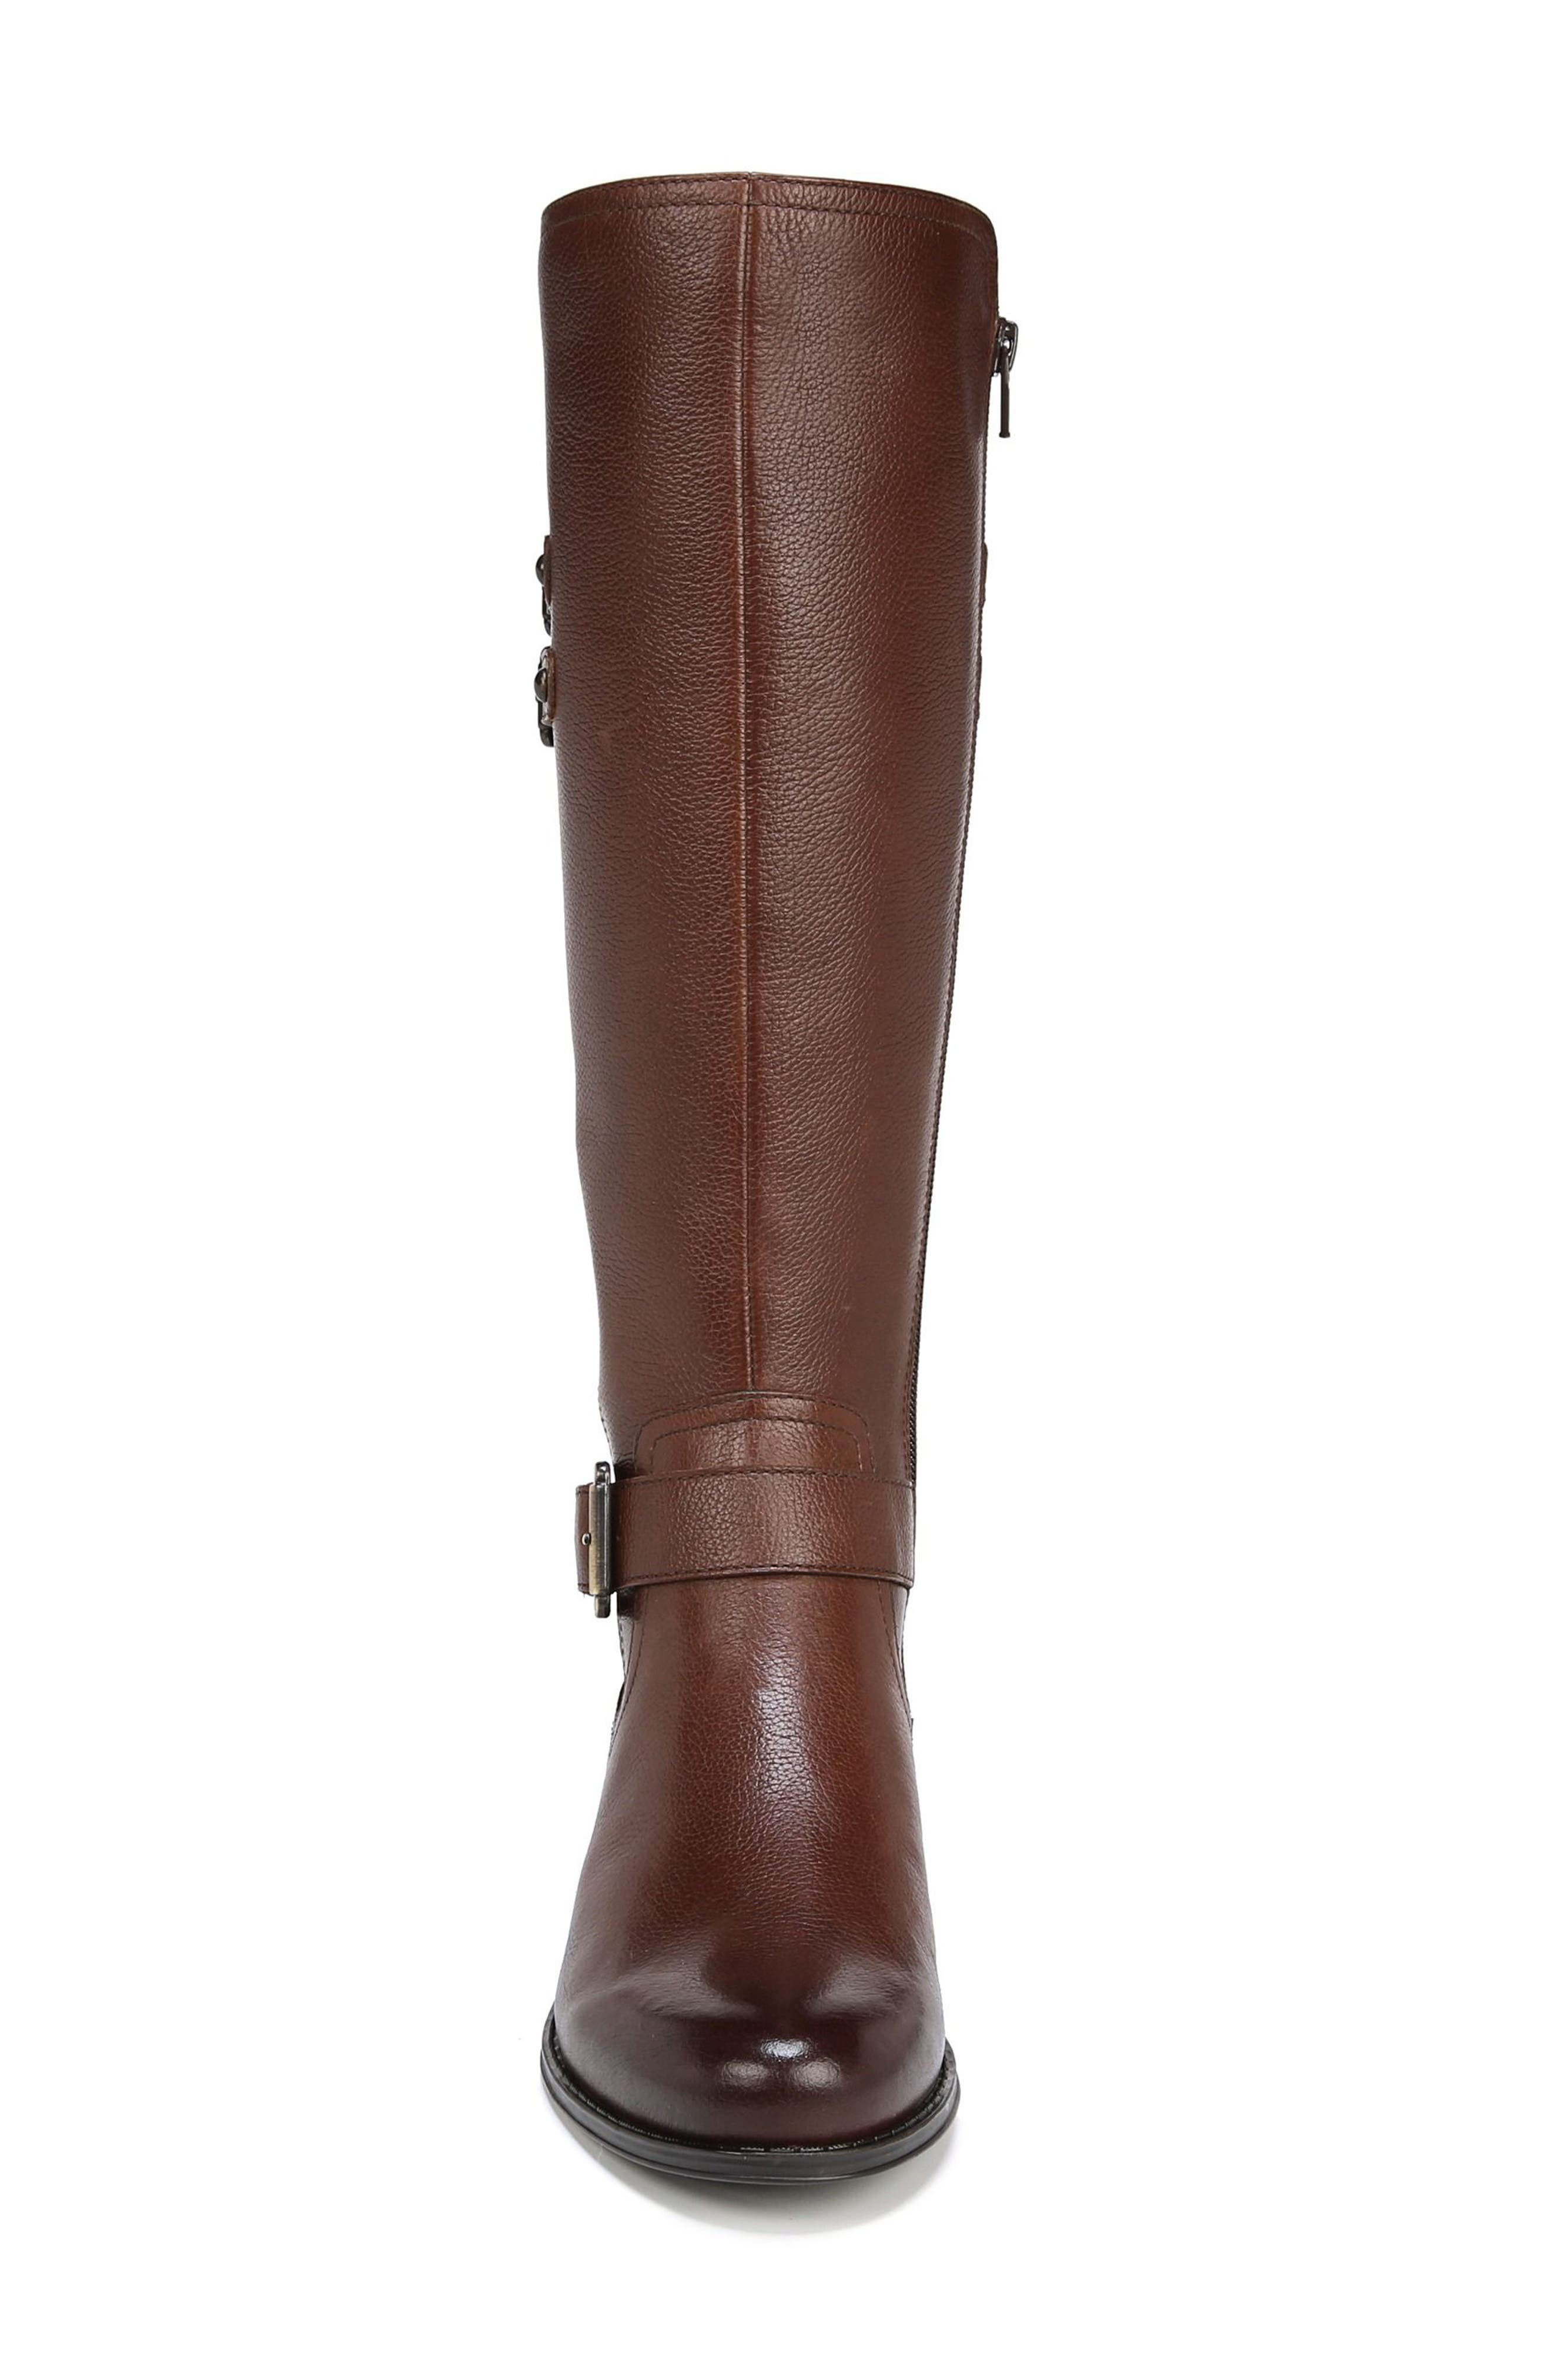 NATURALIZER, Jessie Knee High Riding Boot, Alternate thumbnail 4, color, CHOCOLATE LEATHER